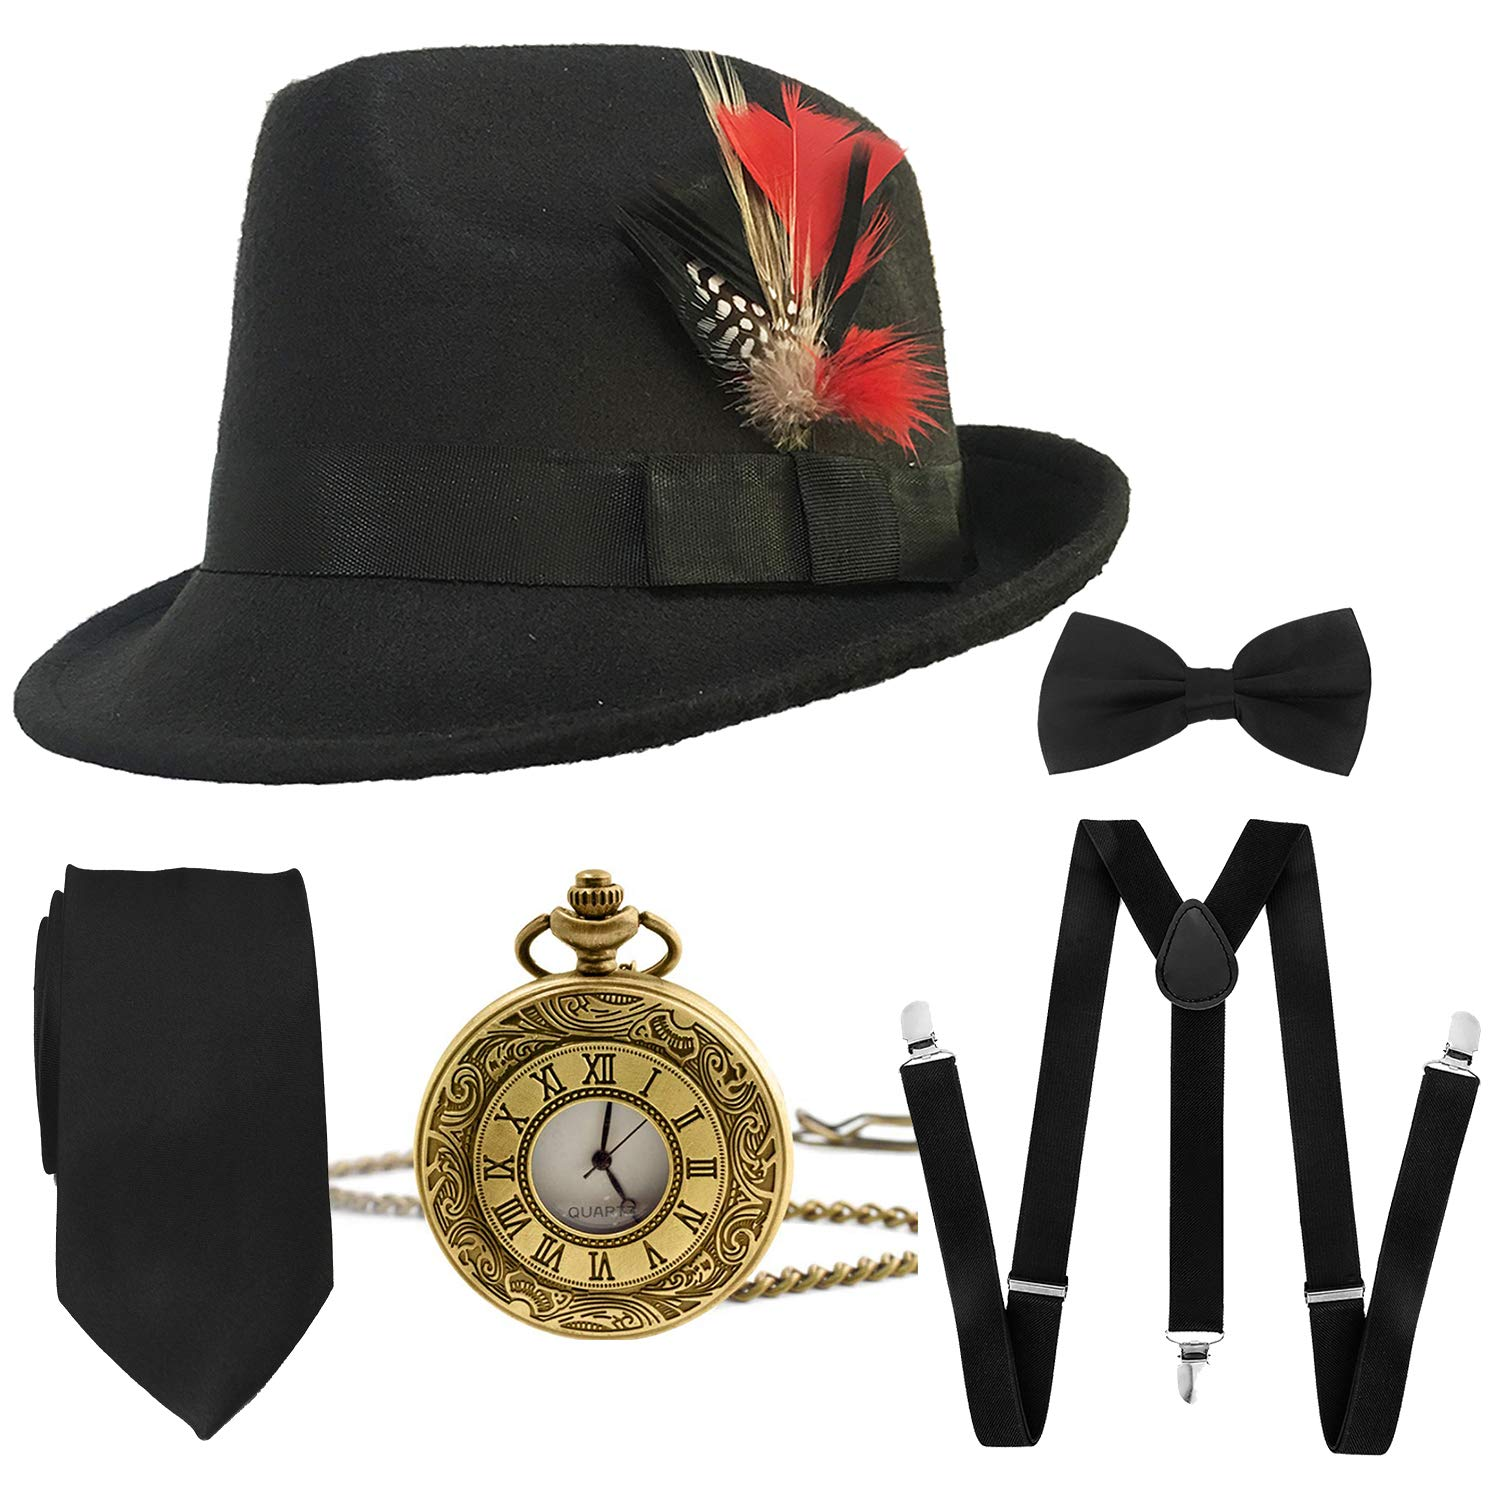 fa6d9473a126c2 Amazon.com: 1920s Mens Gatsby Costume Accessories,Manhattan Fedora Hat  w/Feather,Vintage Pocket Watch,Suspenders Y-Back Trouser Braces,Pre Tied  Bow Tie,Tie ...